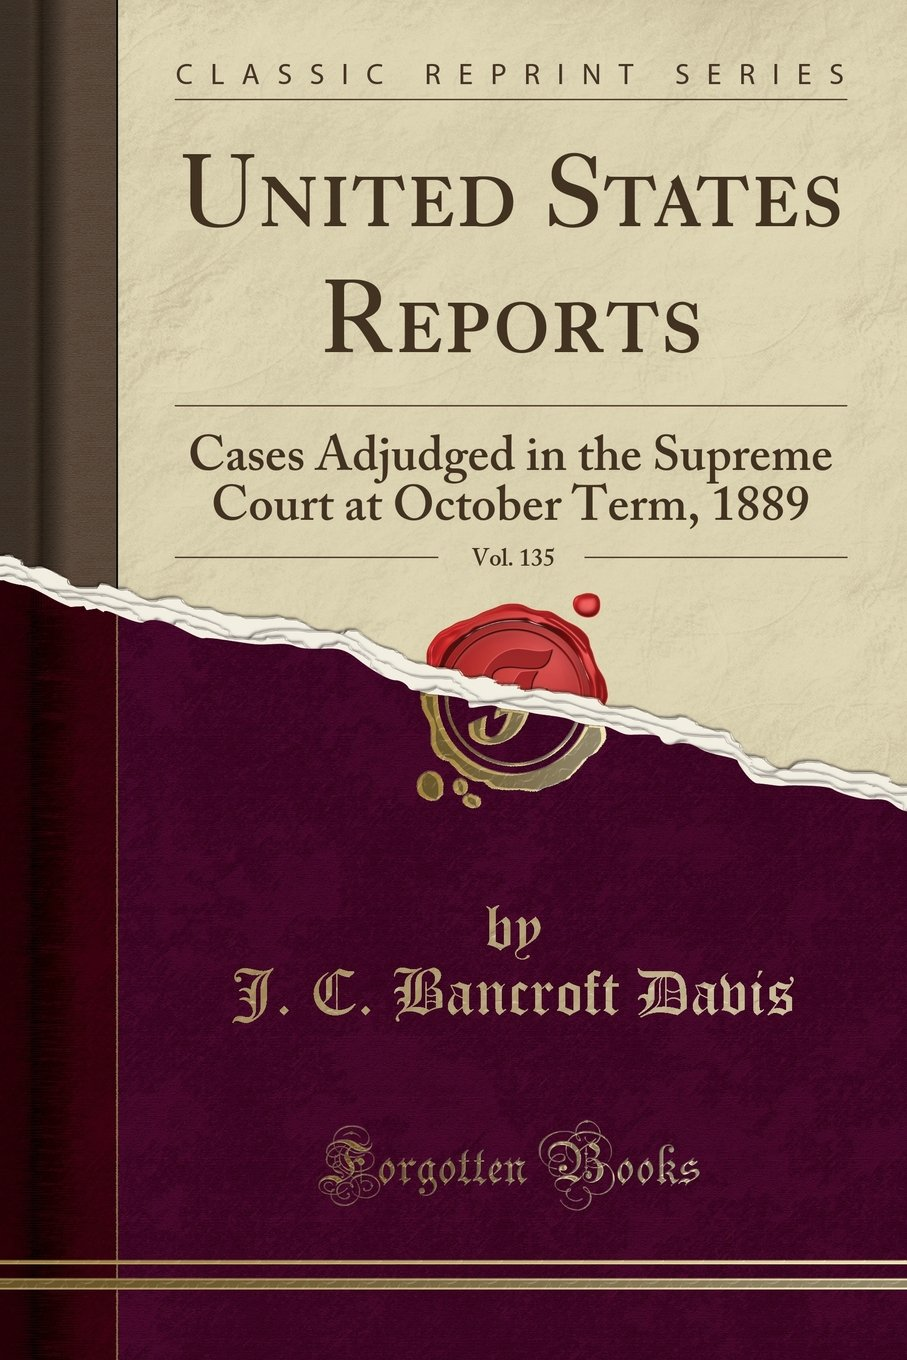 United States Reports, Vol. 135: Cases Adjudged in the Supreme Court at October Term, 1889 (Classic Reprint) pdf